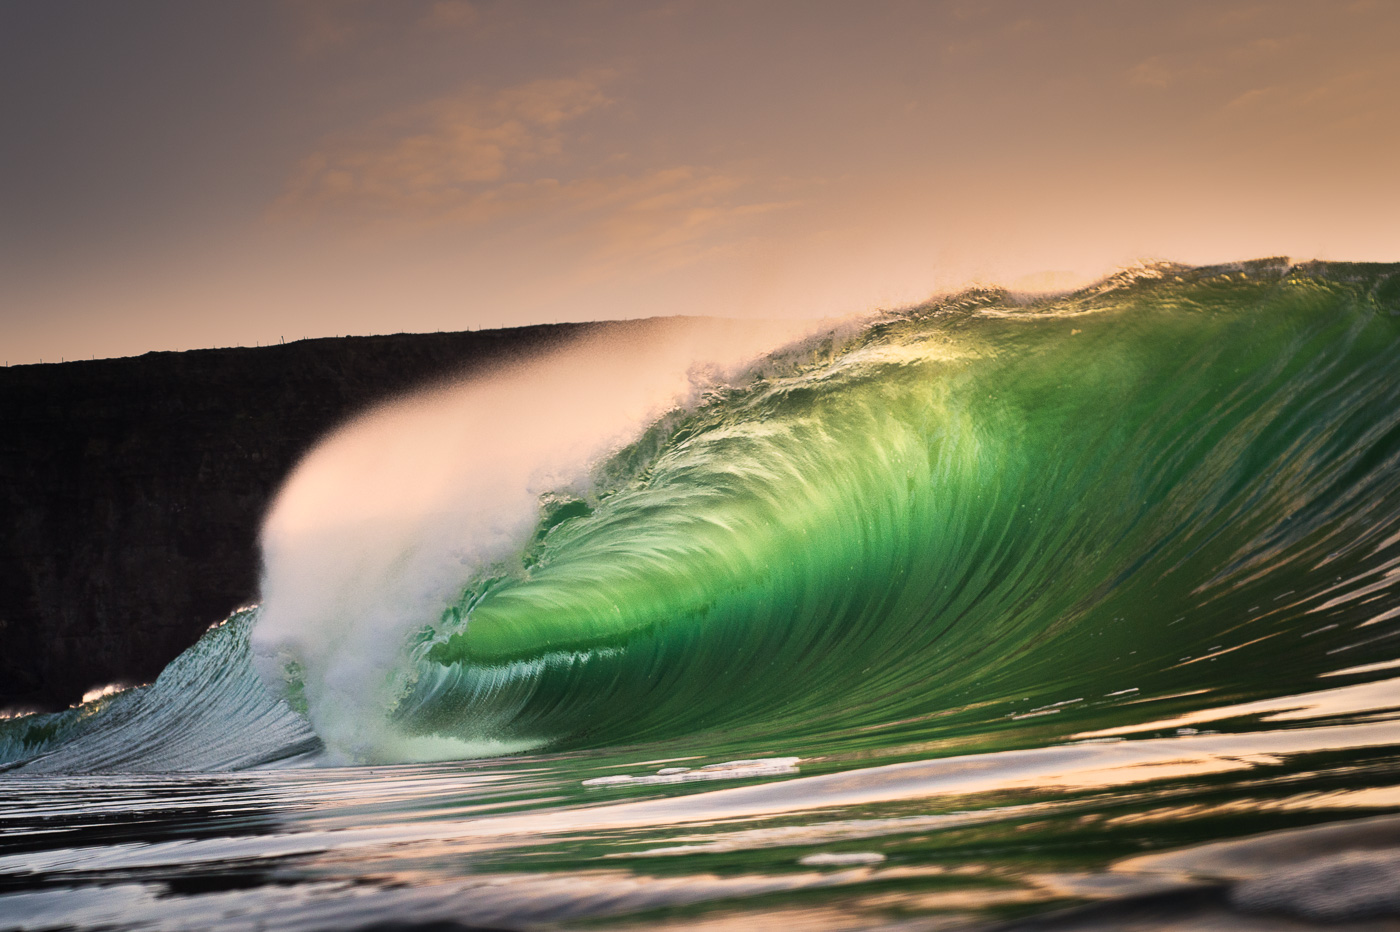 beautiful lit barreling wave ireland riley's